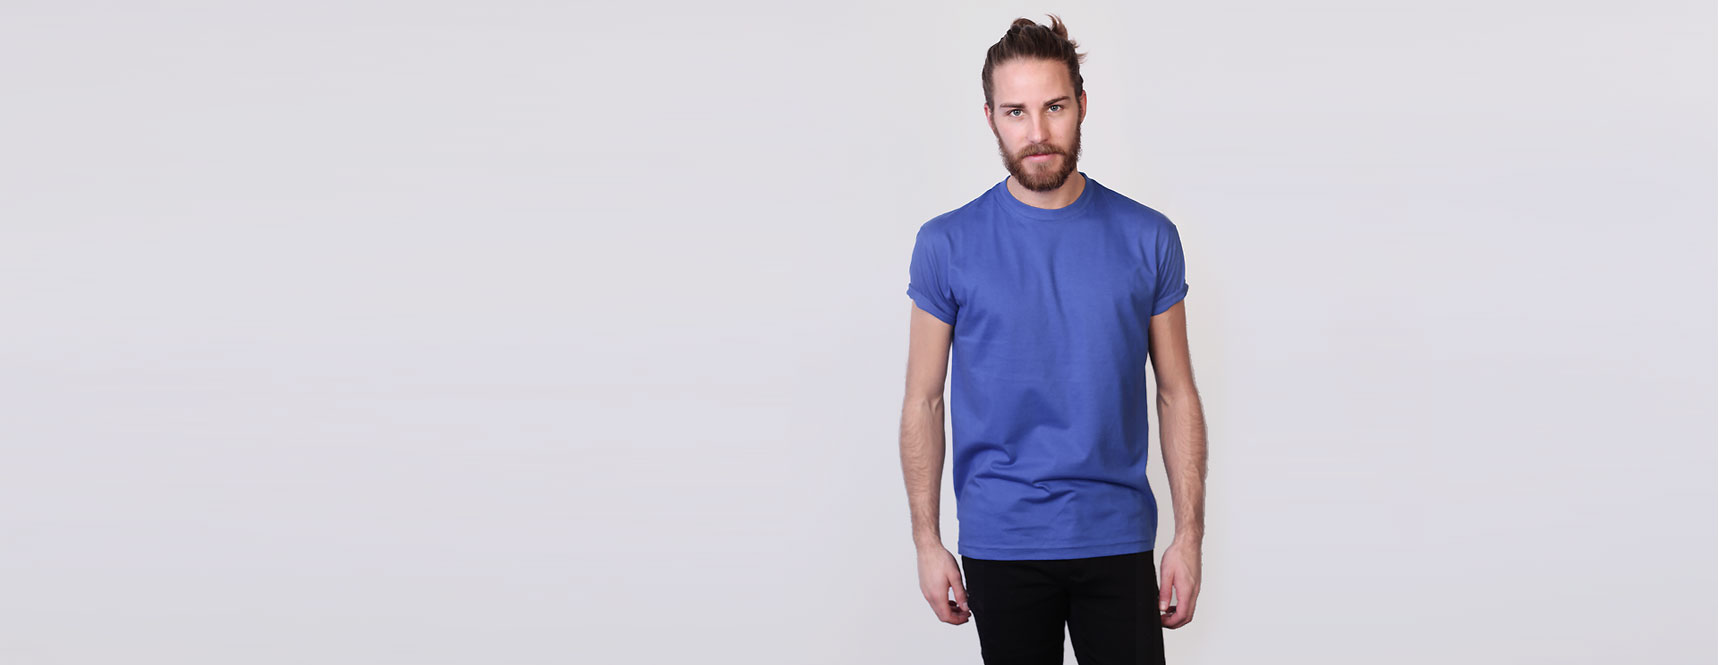 Plain tees graphic tees with the perfect fit for Plain t shirt brands